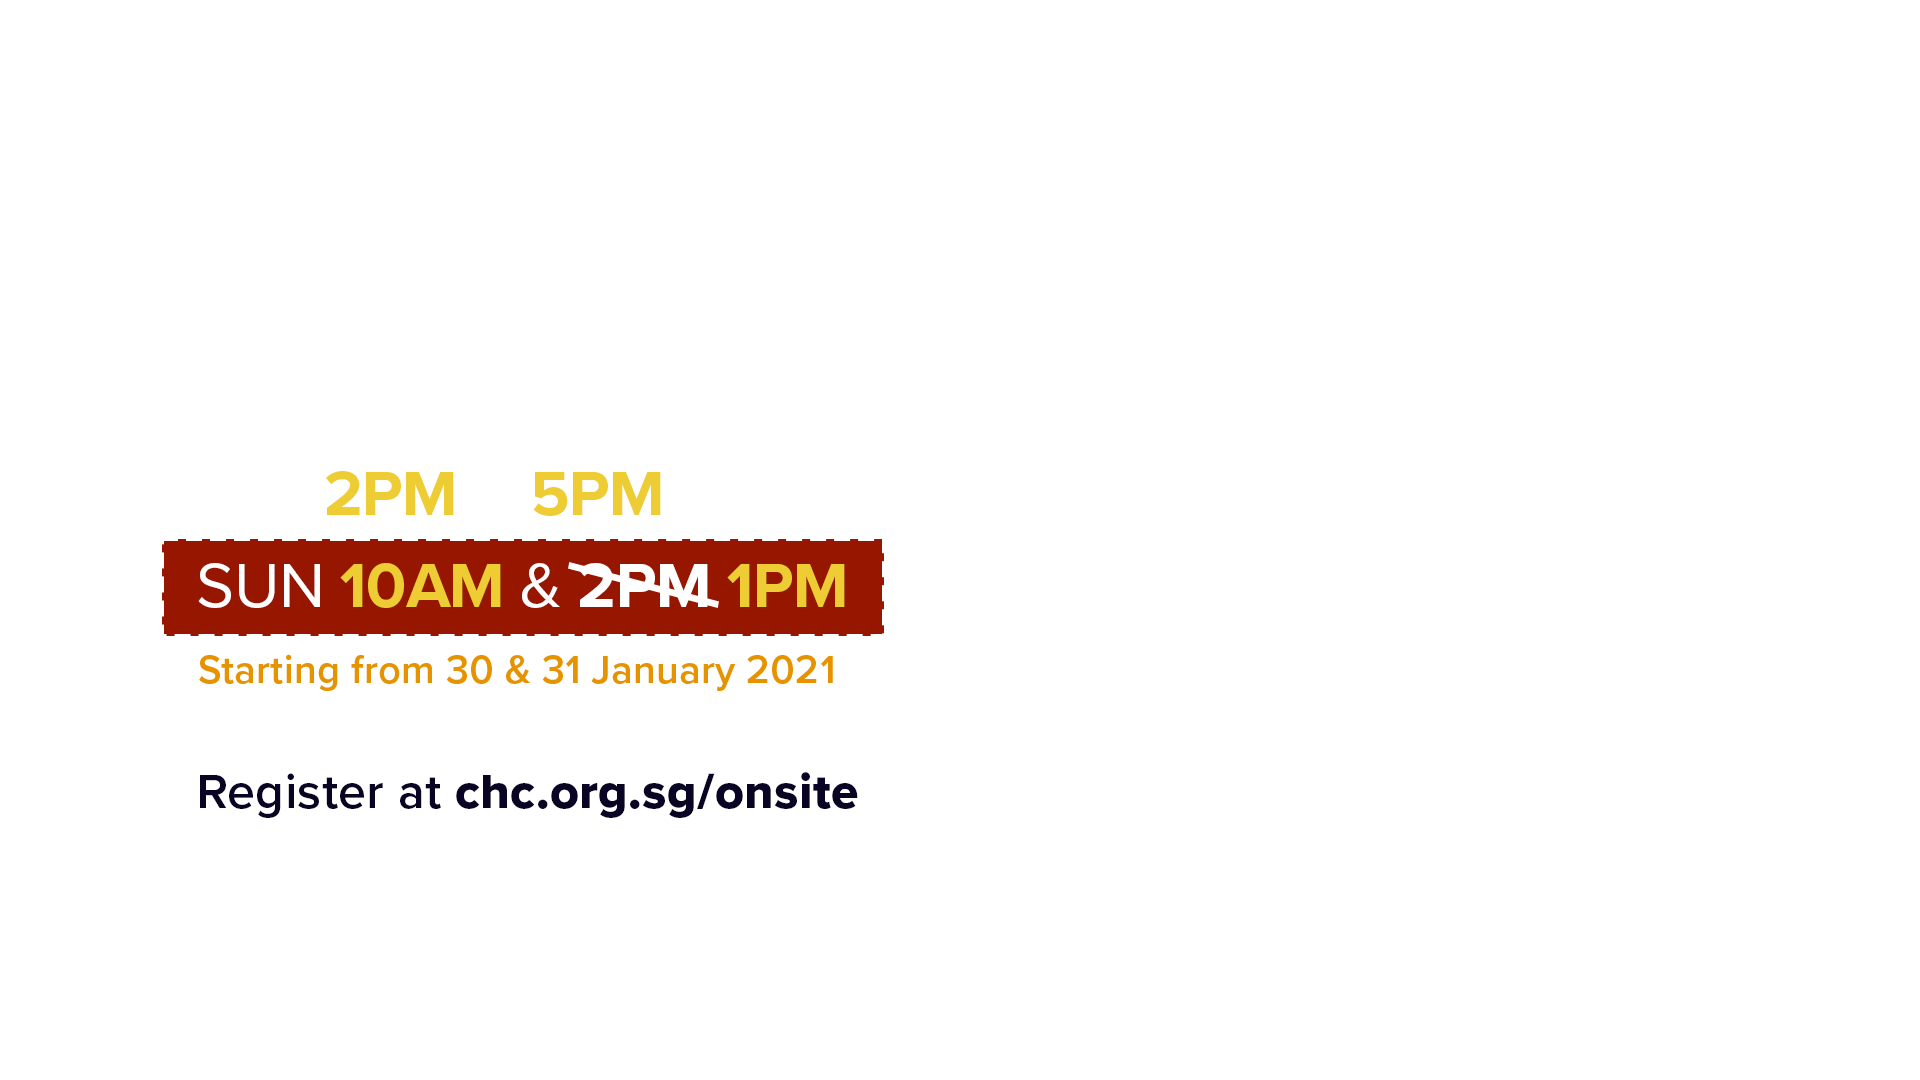 Weekend Services at Hall 606 Theatre